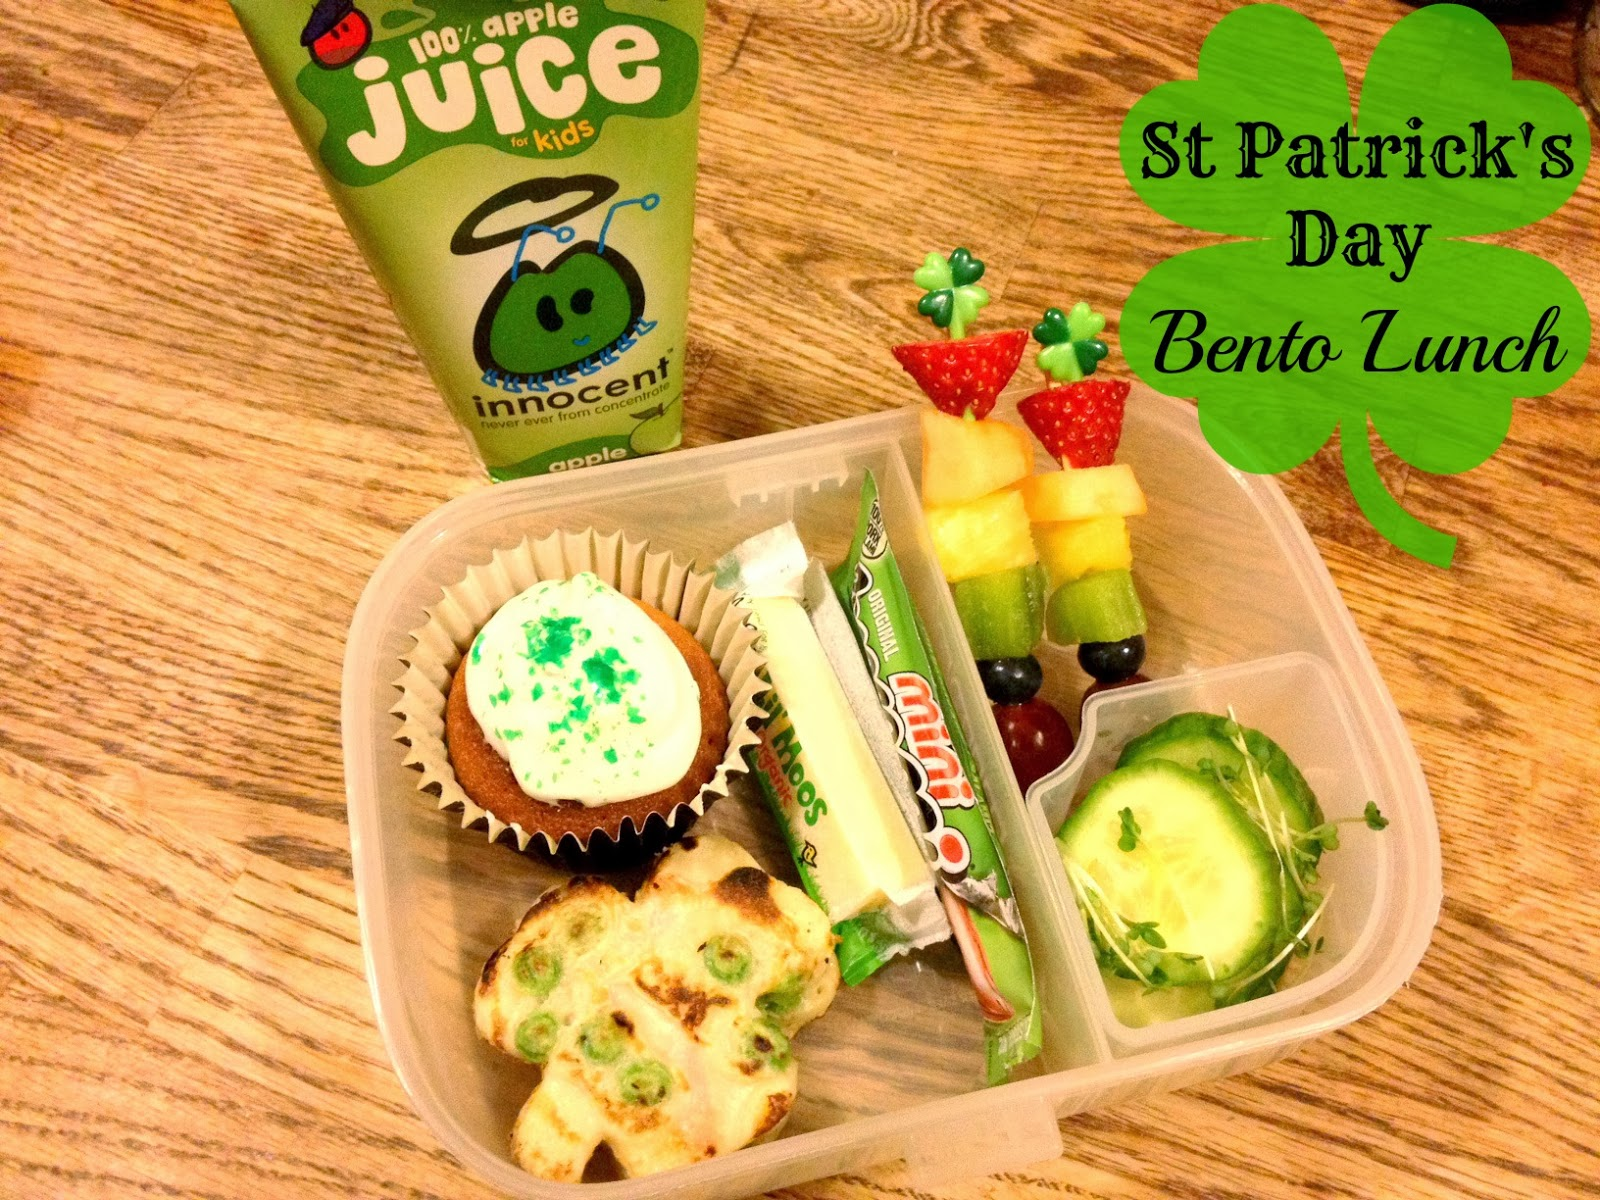 St Patrick's Day Bento Lunch Box